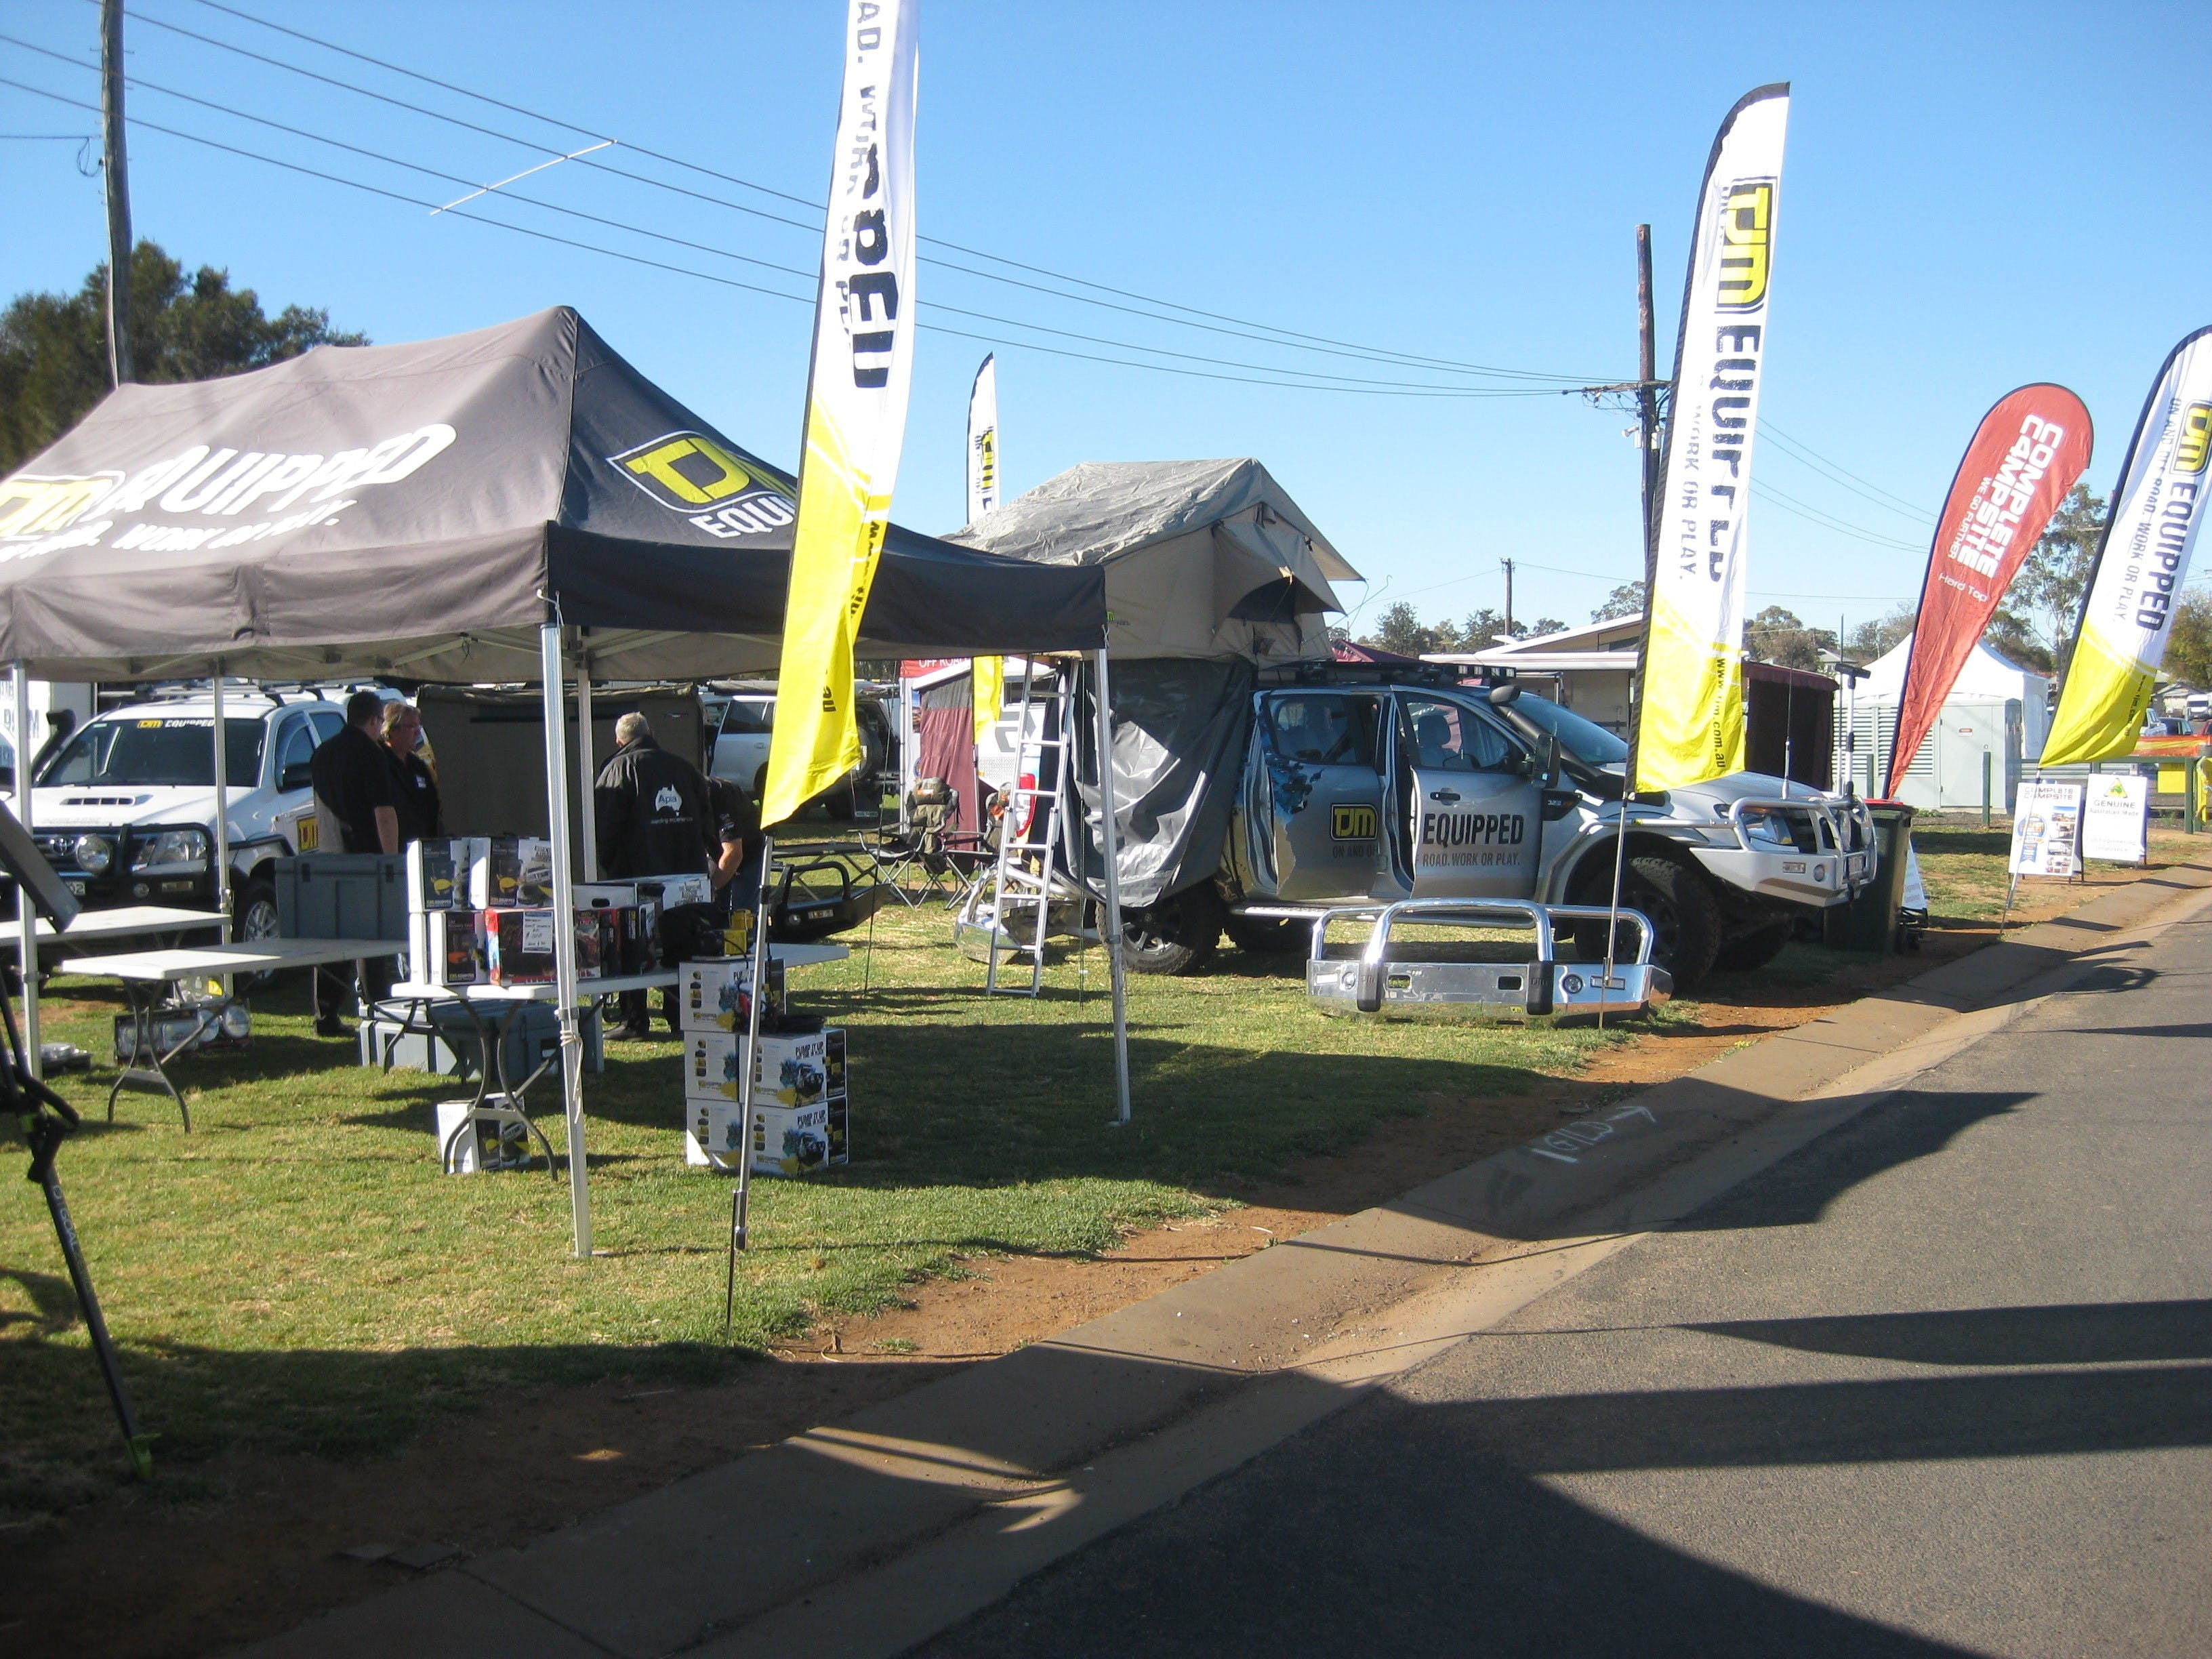 Orana Caravan Camping 4WD Fish and Boat Show - Accommodation NSW